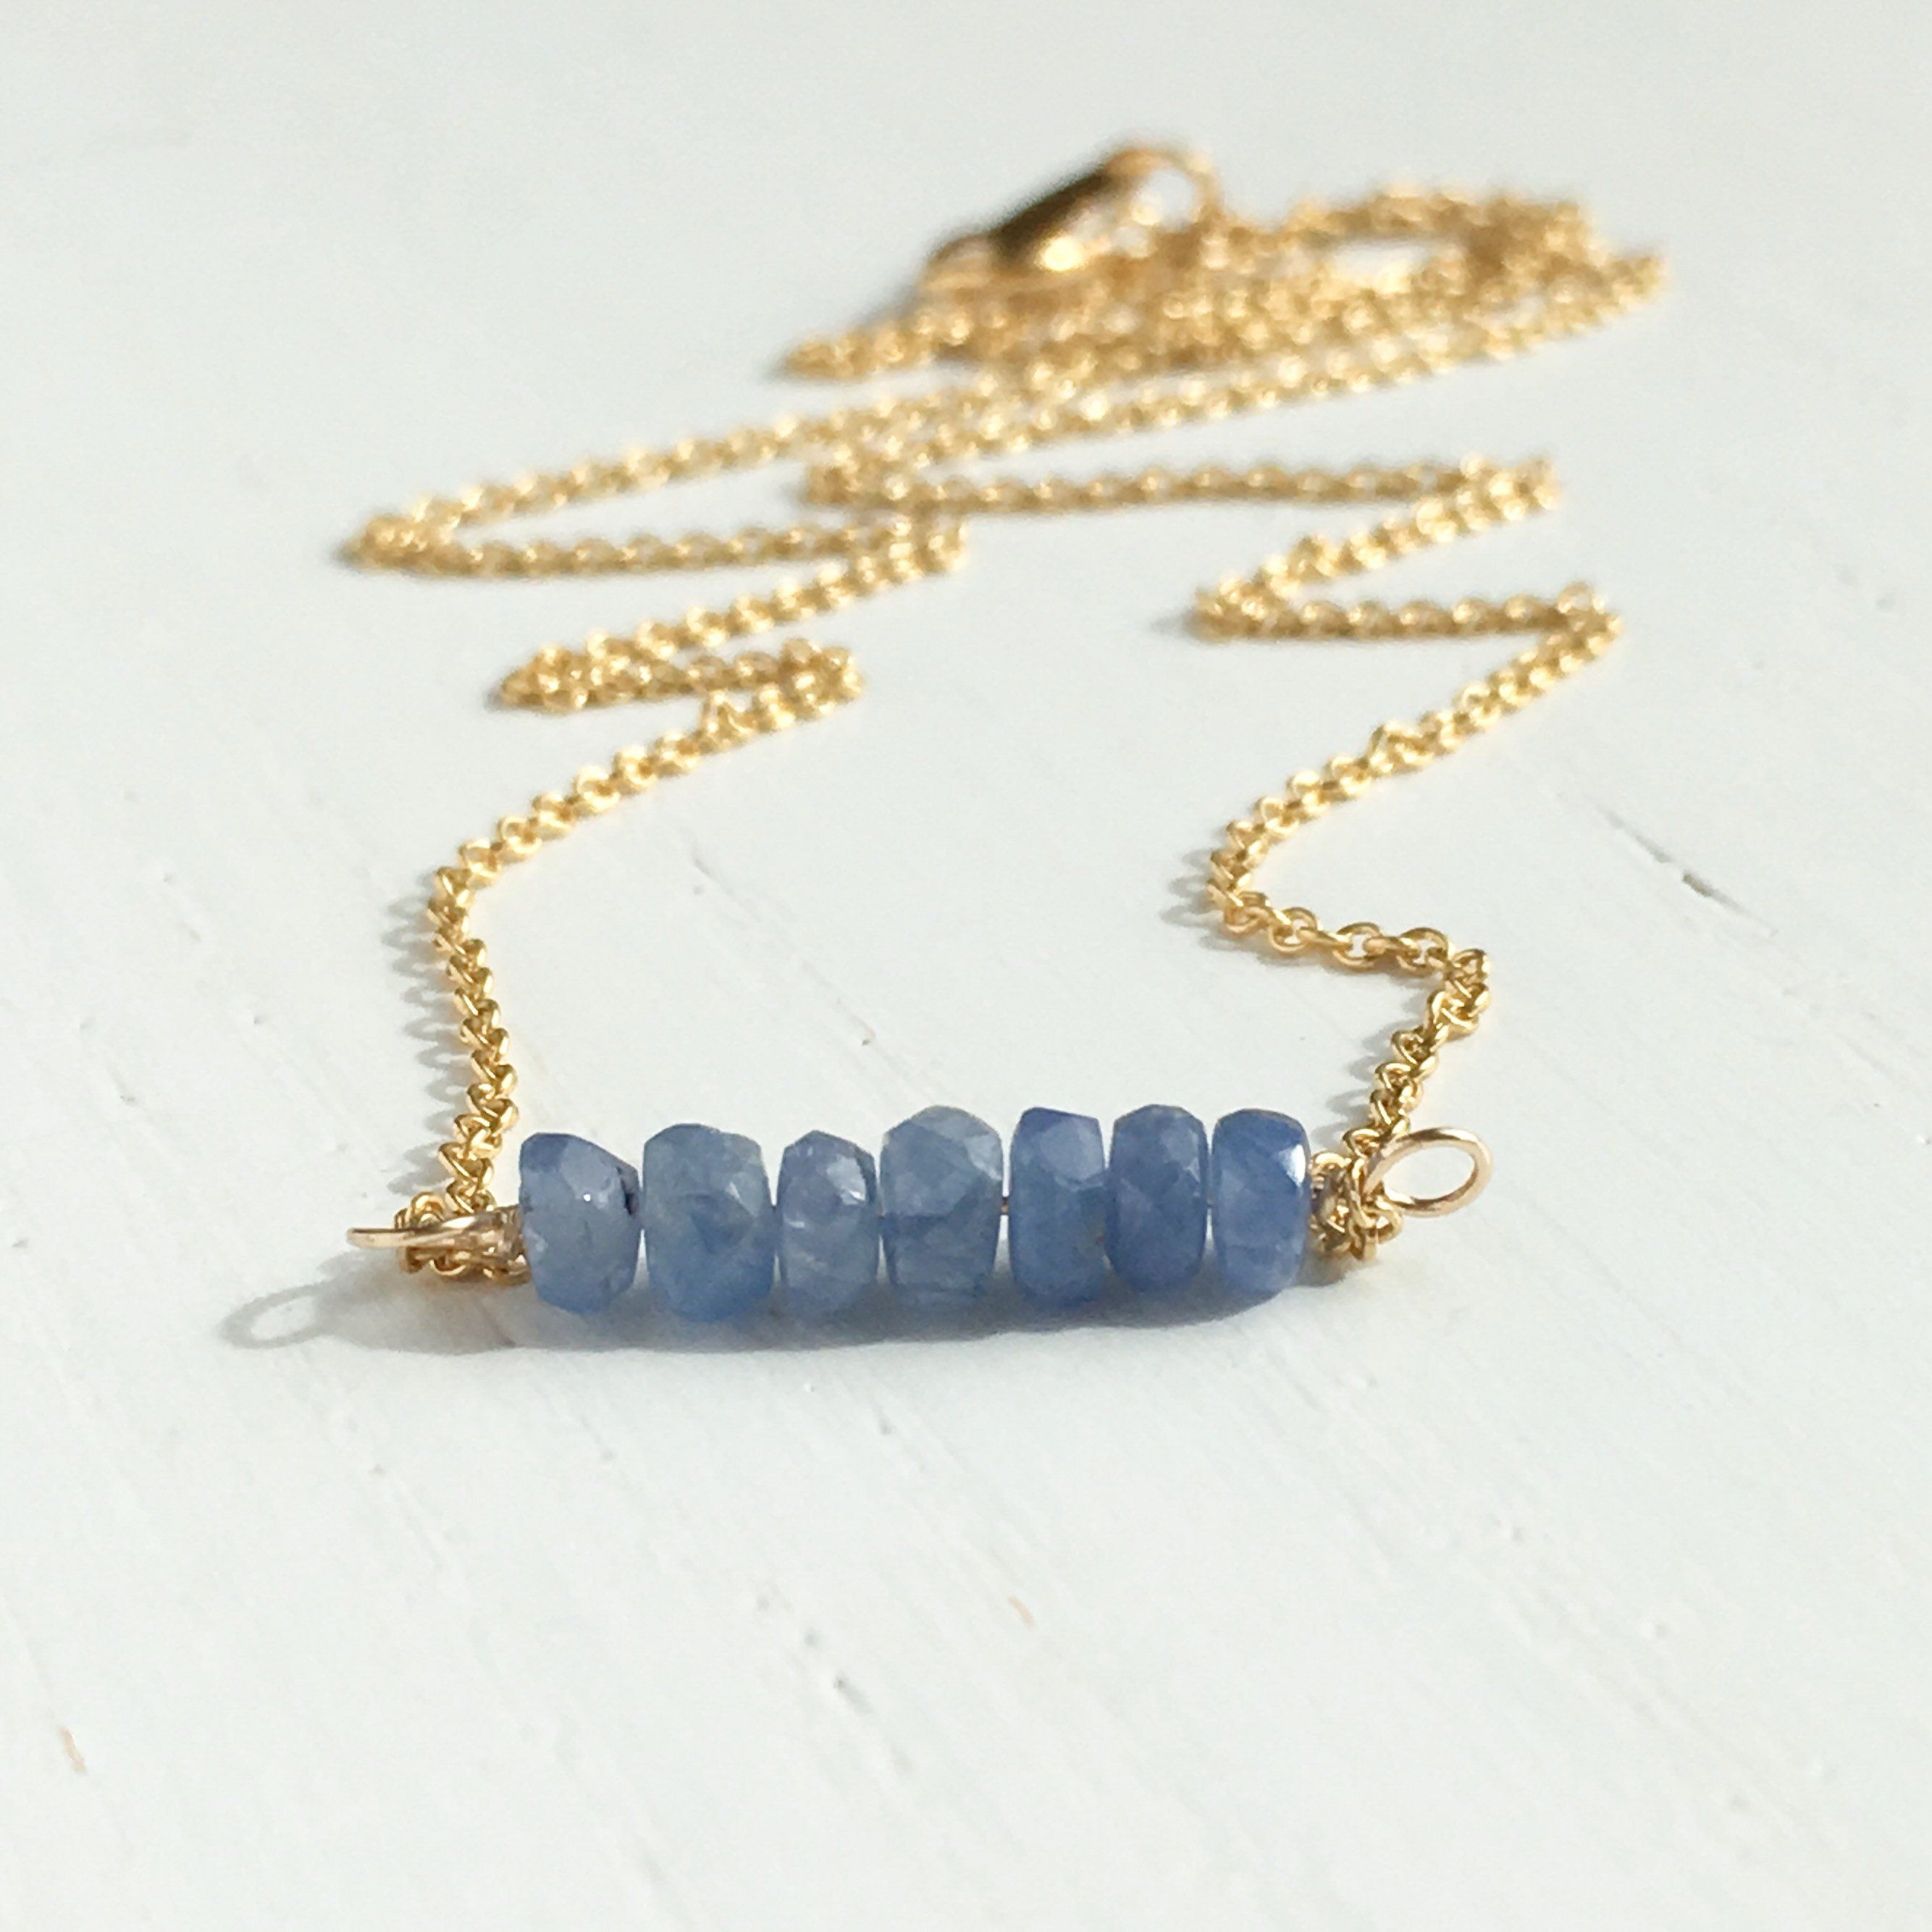 Light Blue Sapphire Necklace September Birthstone Necklace Choker Necklace 14 Inch Necklace Christmas Gift For Her Girlfriend Birthday Blue Sapphire Necklace September Birthstone Necklace Sapphire Necklace